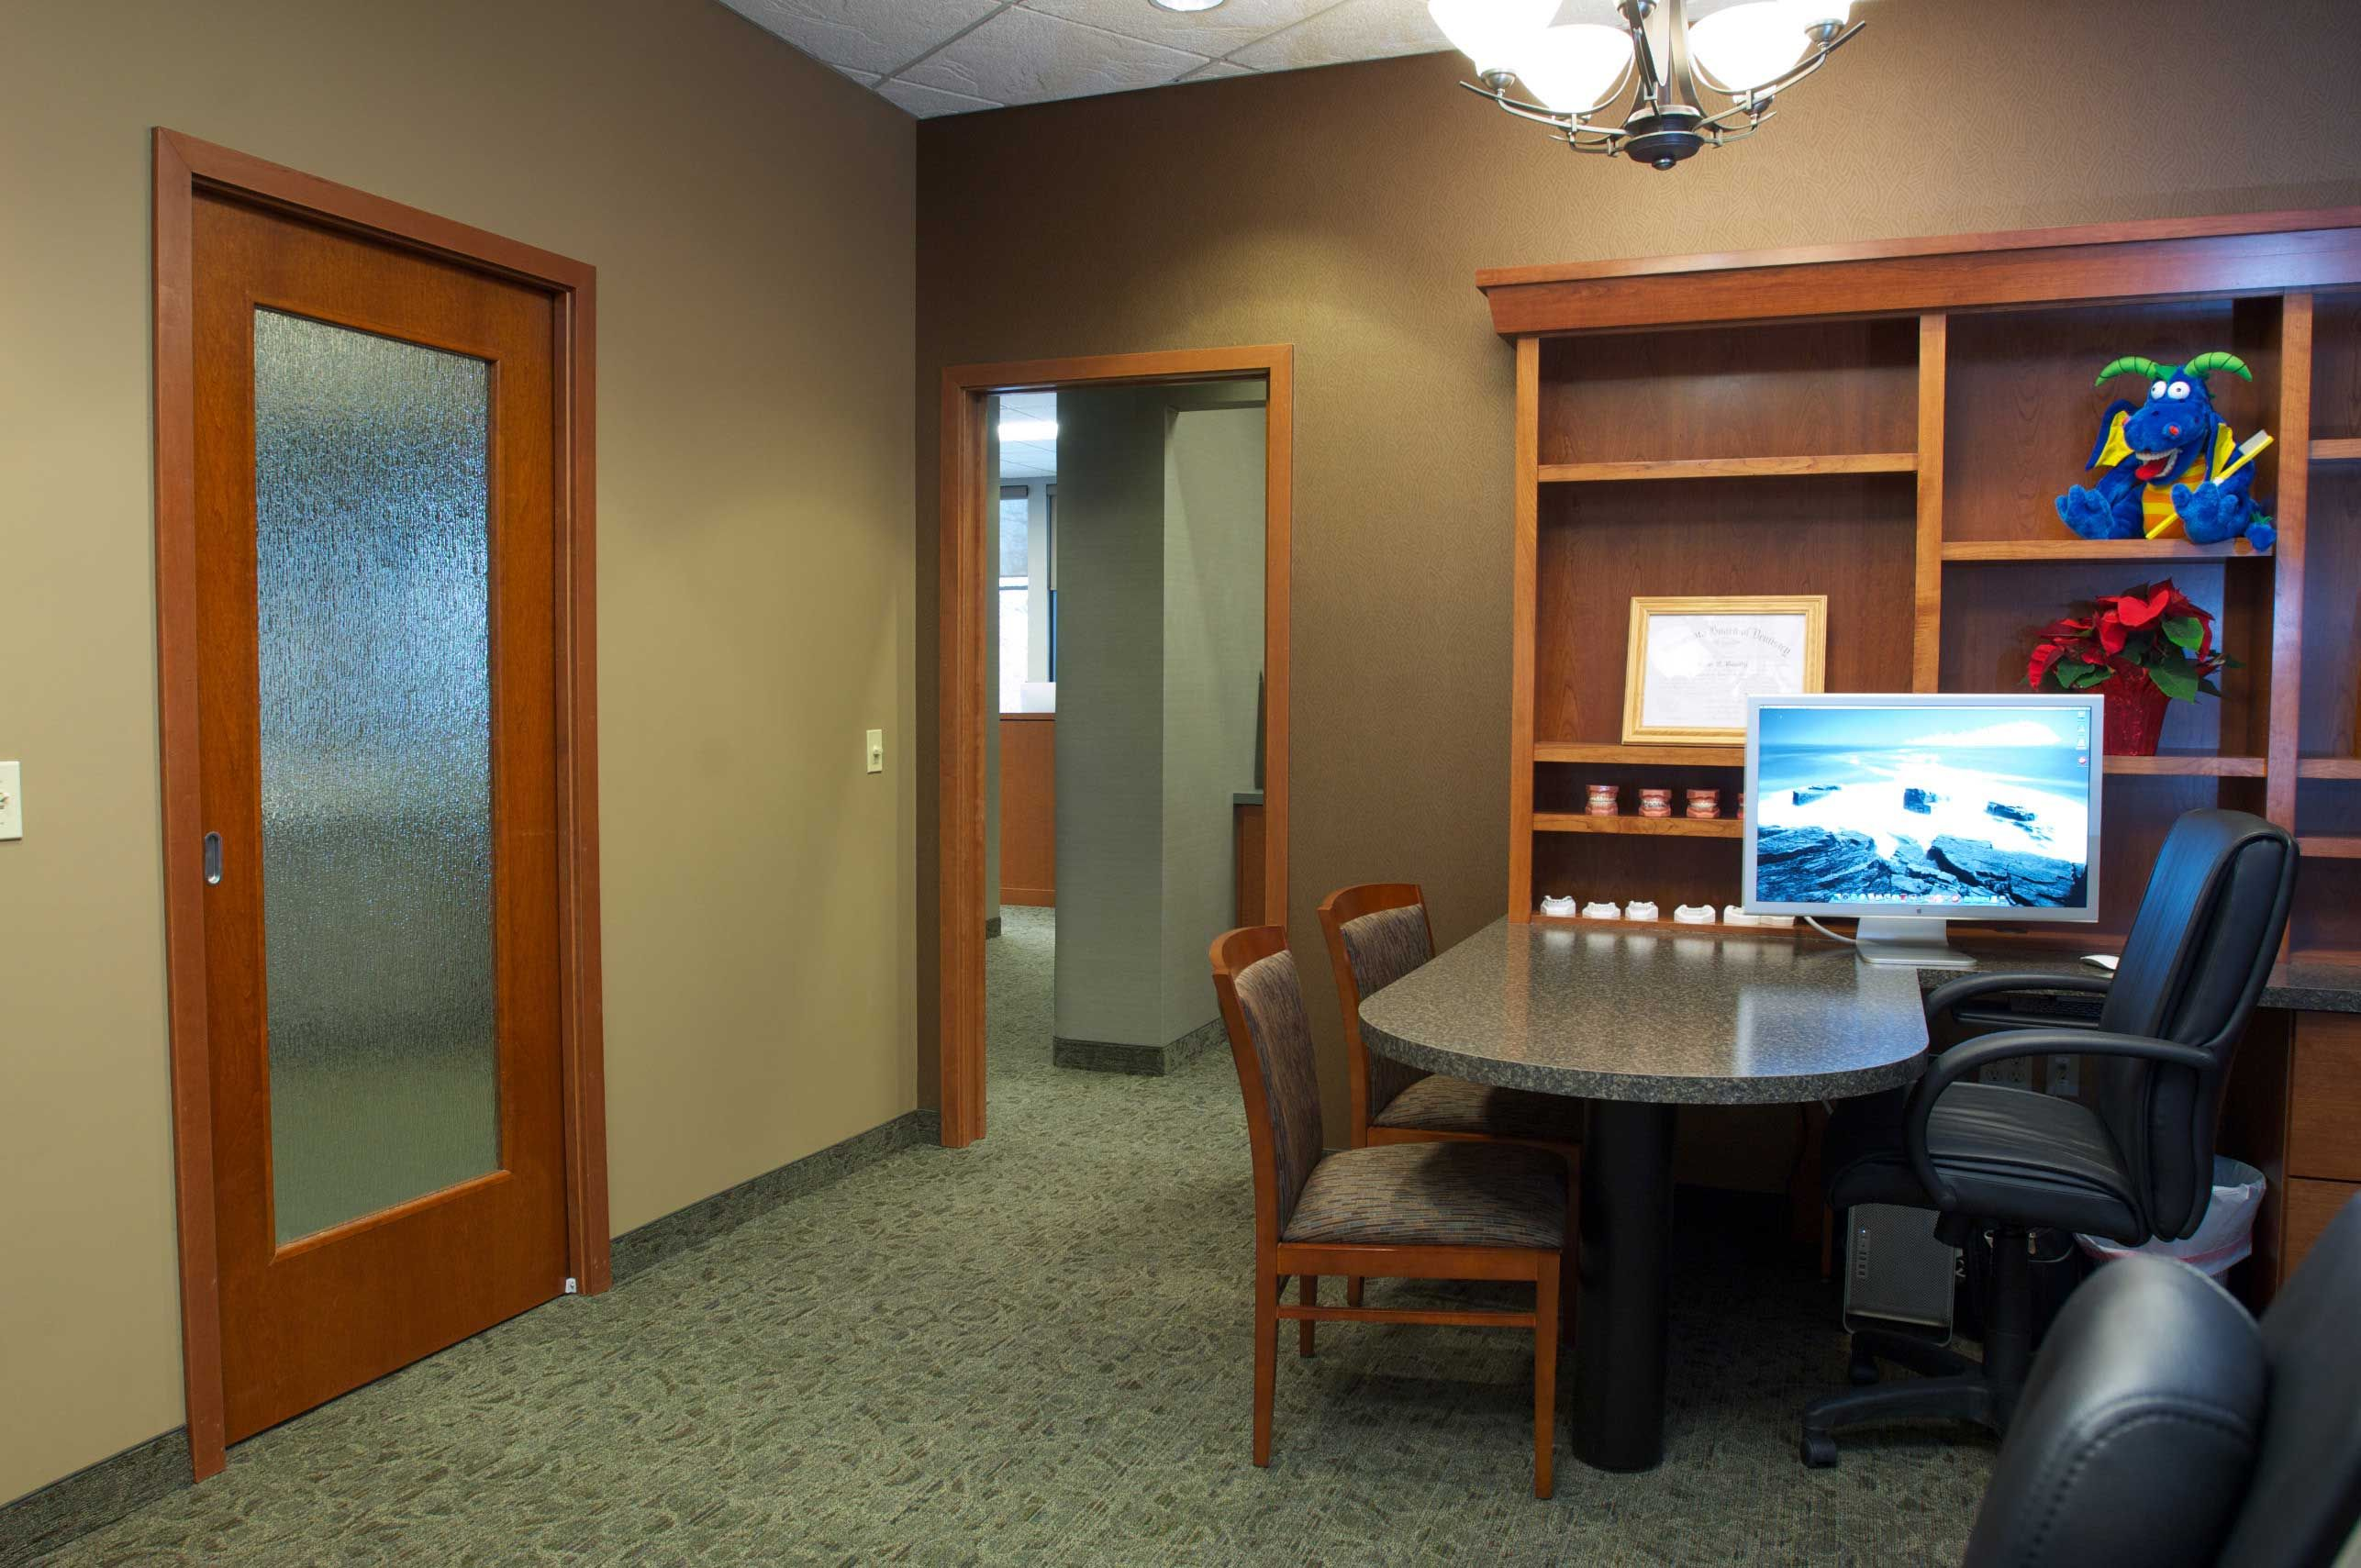 office furniture ideas layout. Medical Office Interior Design Pictures   Orthodontic Layout Furniture Ideas I